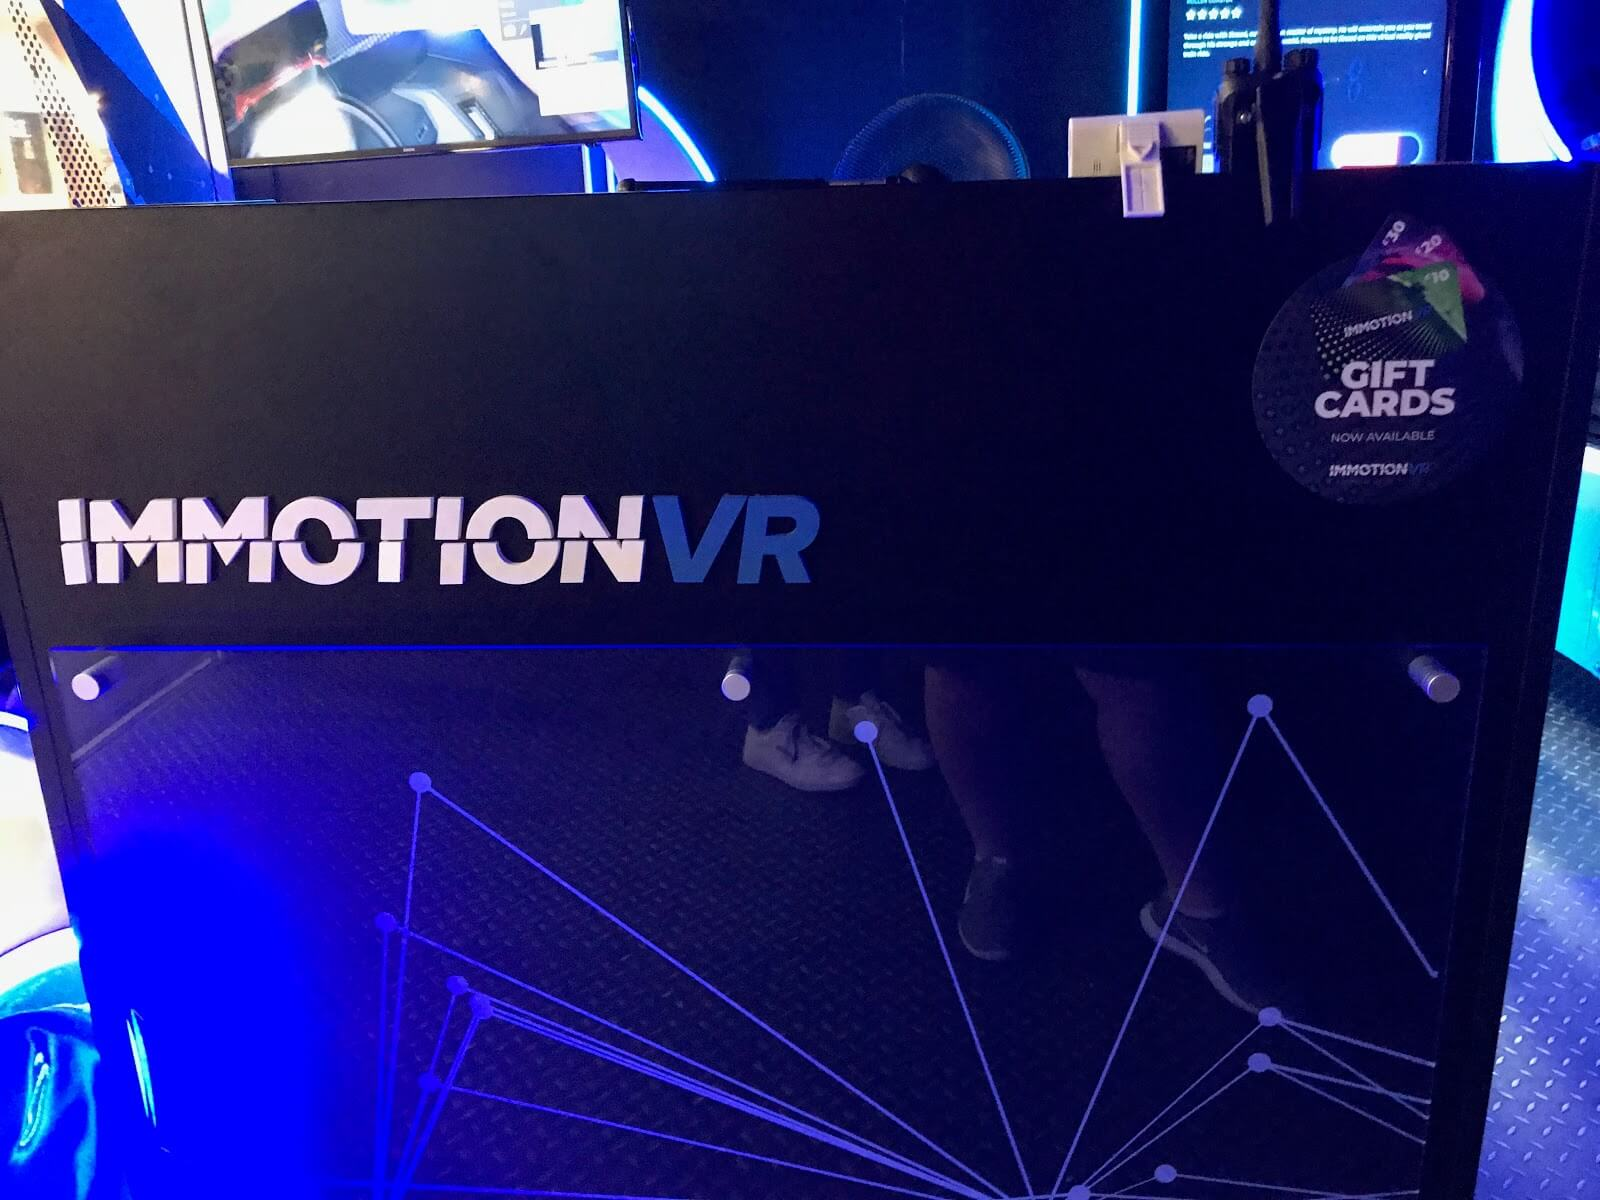 ImmotionVR Experience